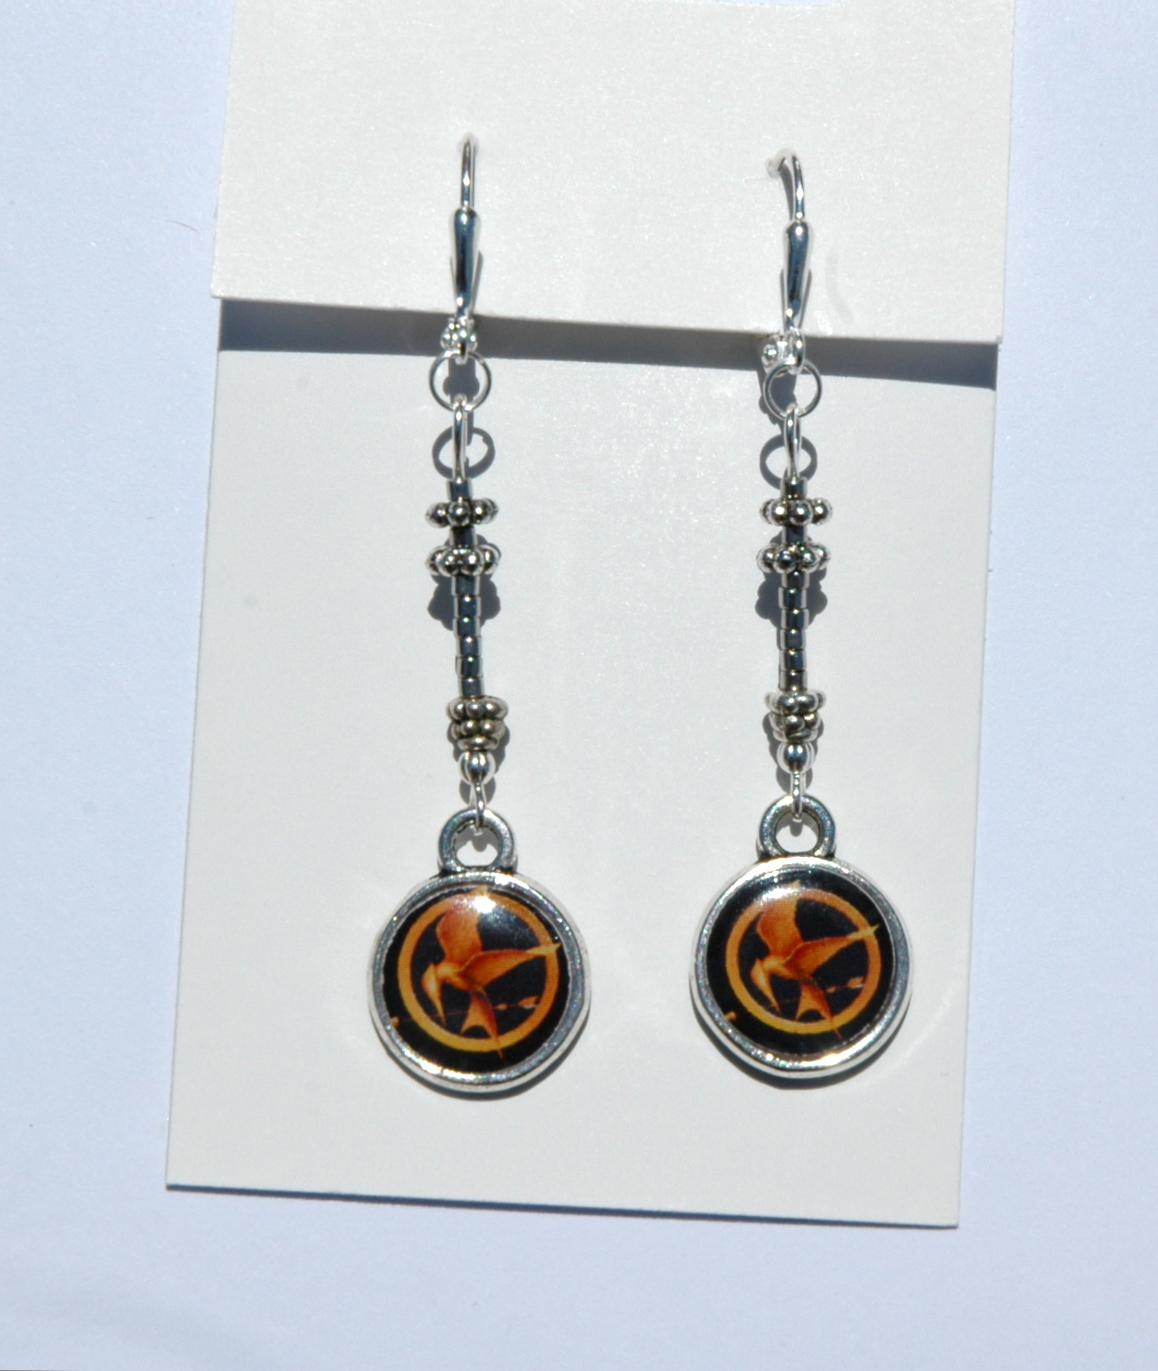 Make Your Own Charm Bracelets: Hunger Games Lessons: DIY: Create Your Own Hunger Games